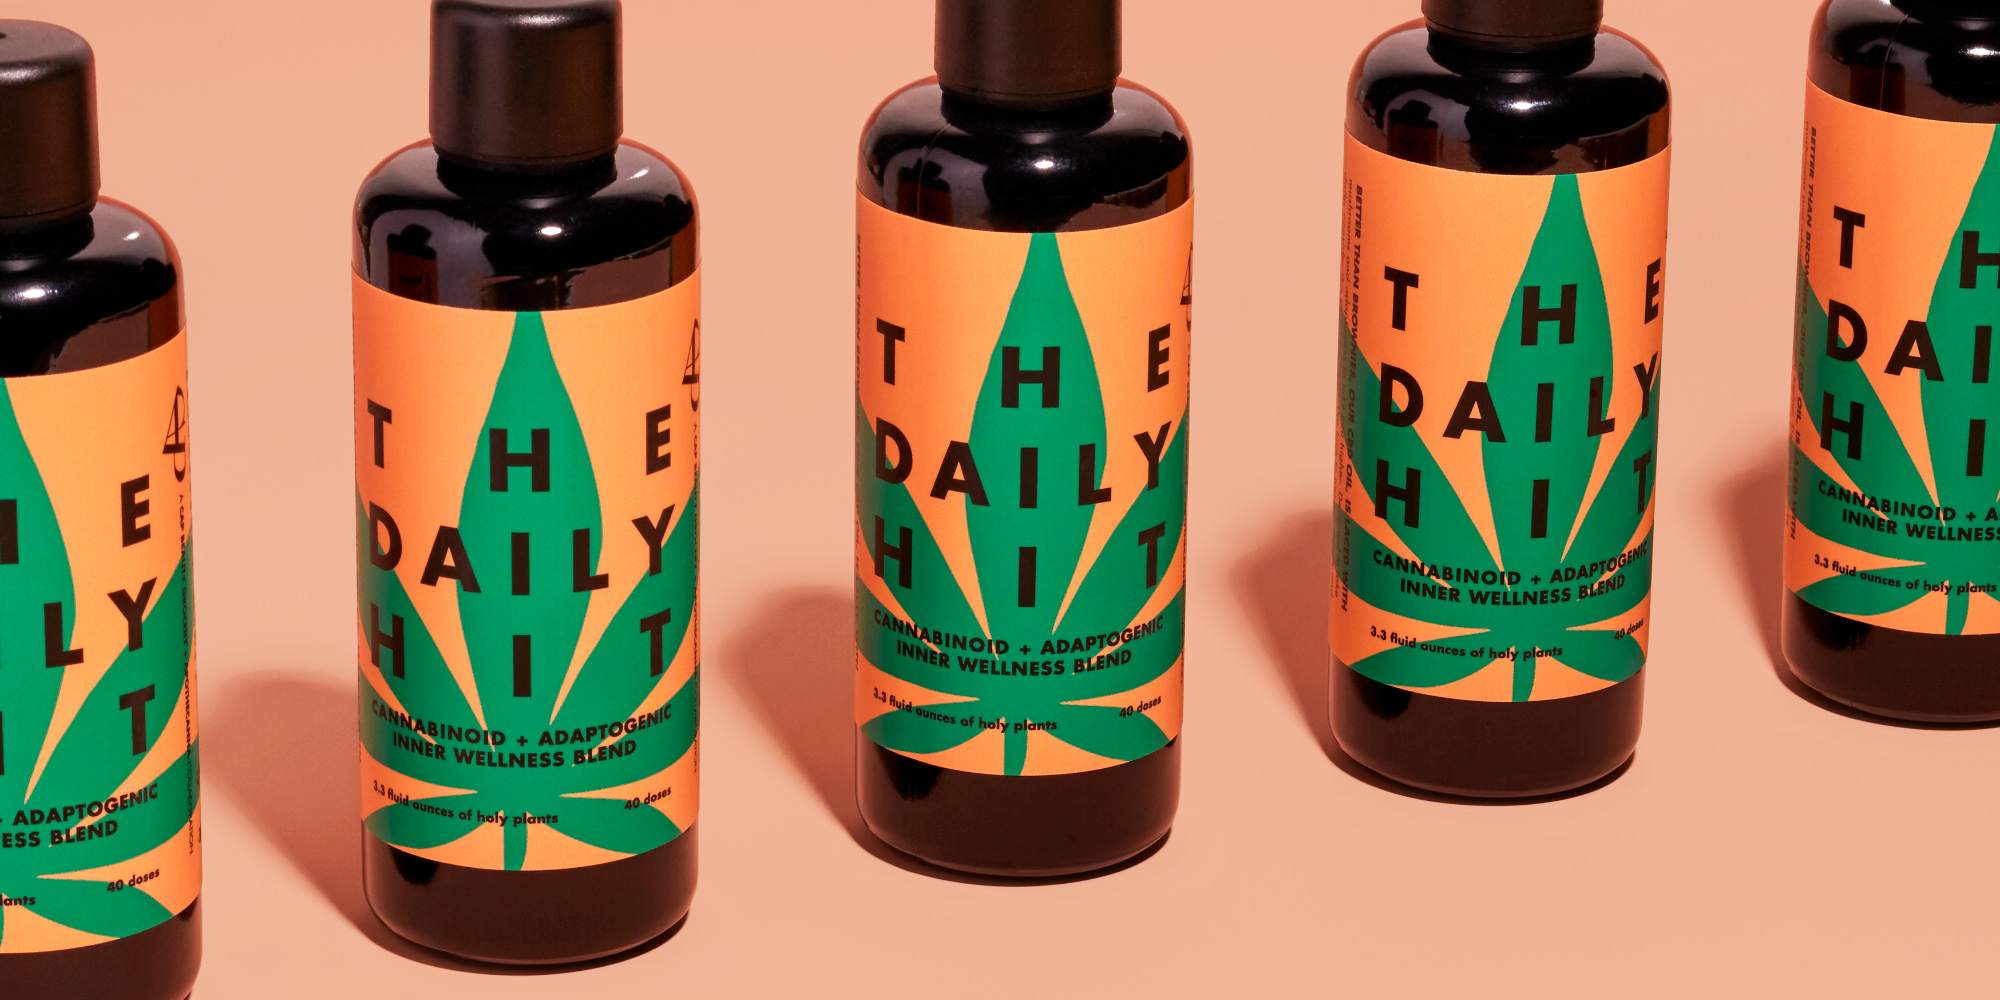 CAP Beauty's New E-Commerce Site Prioritizes Hemp-Fueled Health And Beauty